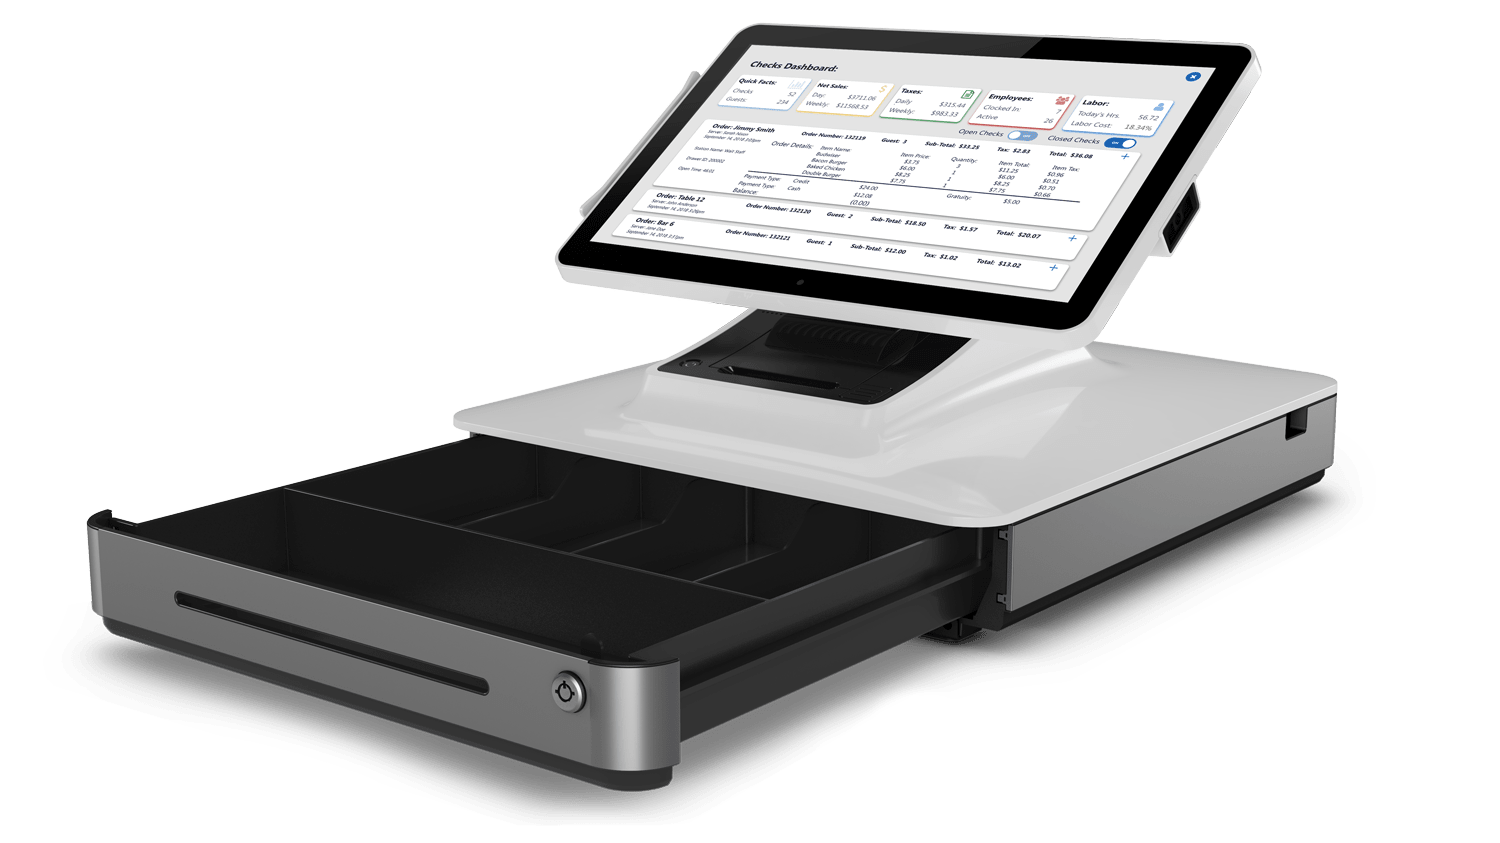 Pointos hardware - all-in-one